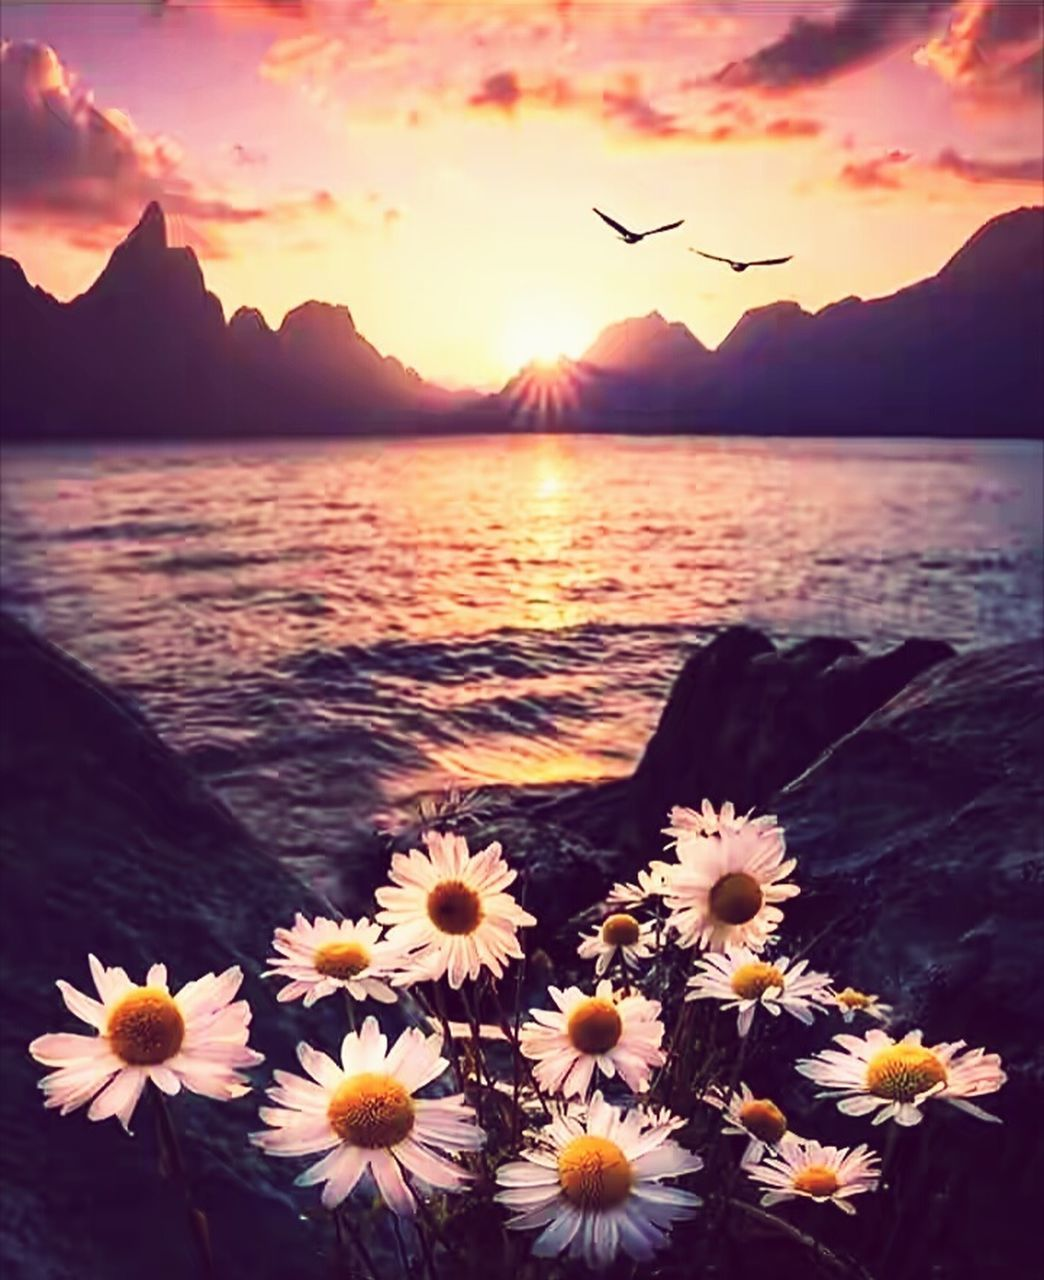 sunset, beauty in nature, nature, mountain, flower, water, scenics, sea, tranquility, sky, sun, outdoors, tranquil scene, mountain range, no people, sunlight, flower head, fragility, close-up, day, freshness